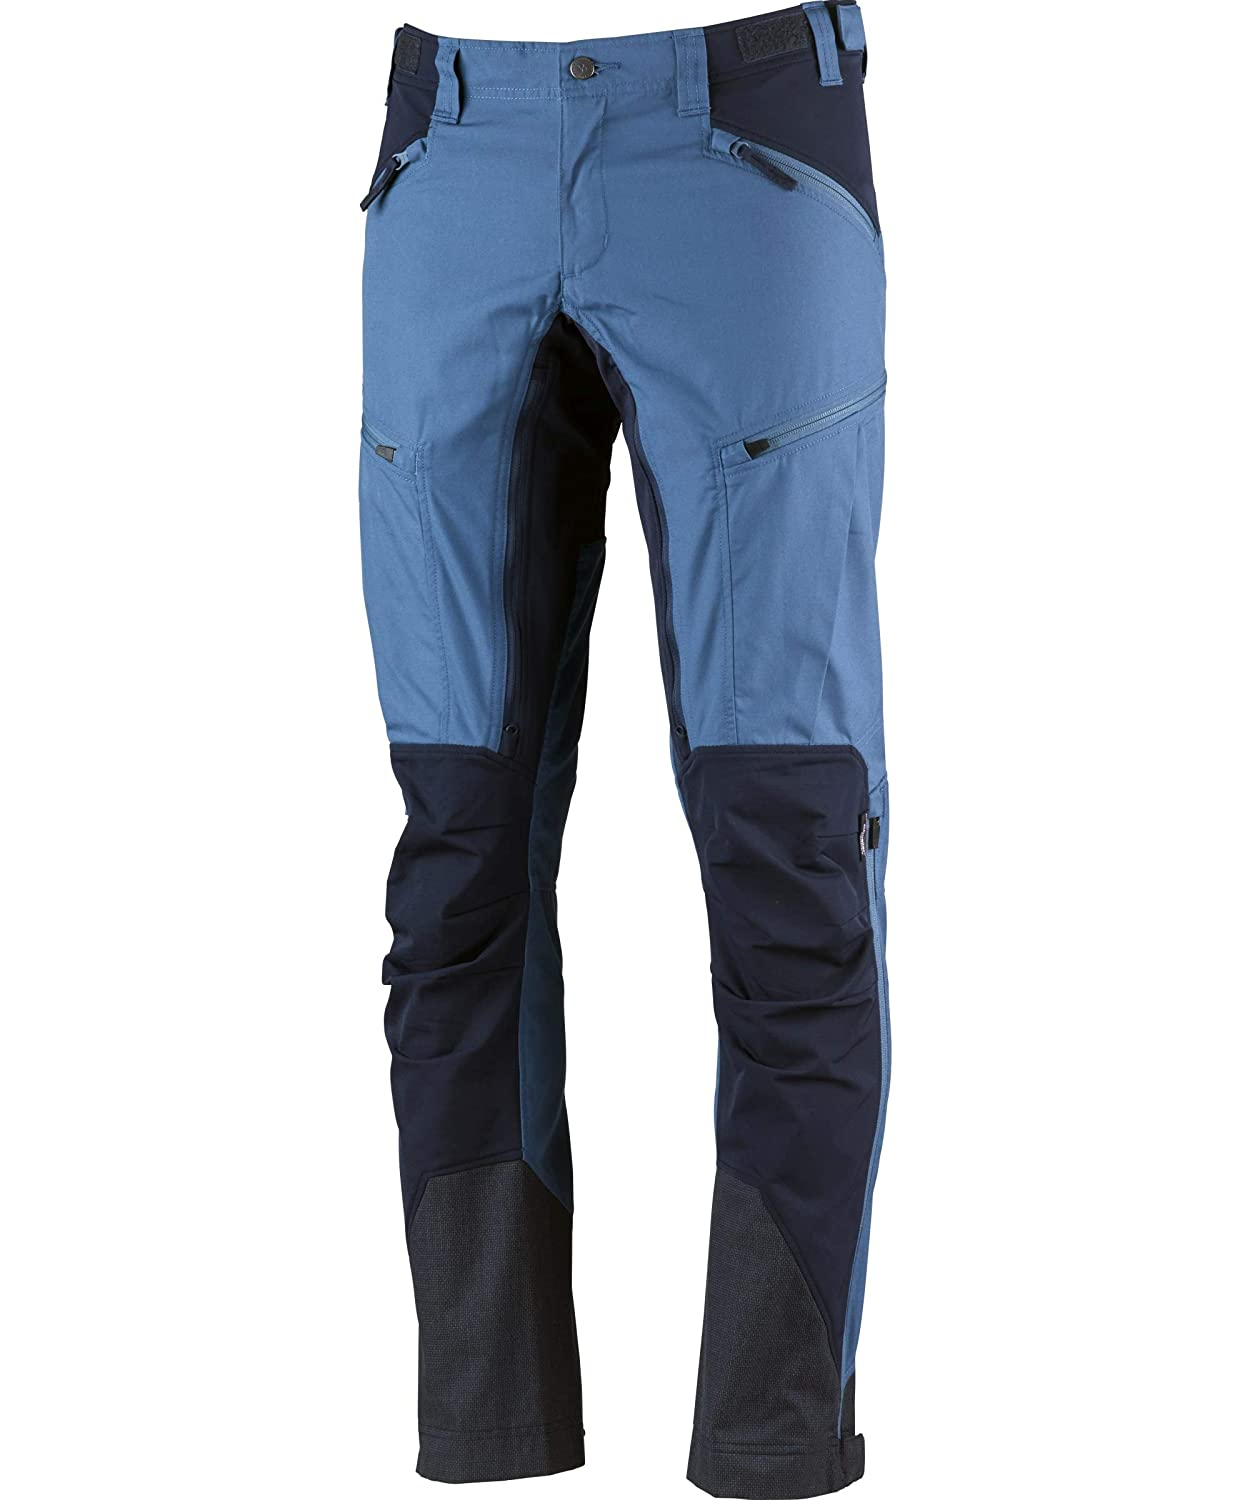 Petrol Deep bluee 50-long Lundhags Makke hiking pants